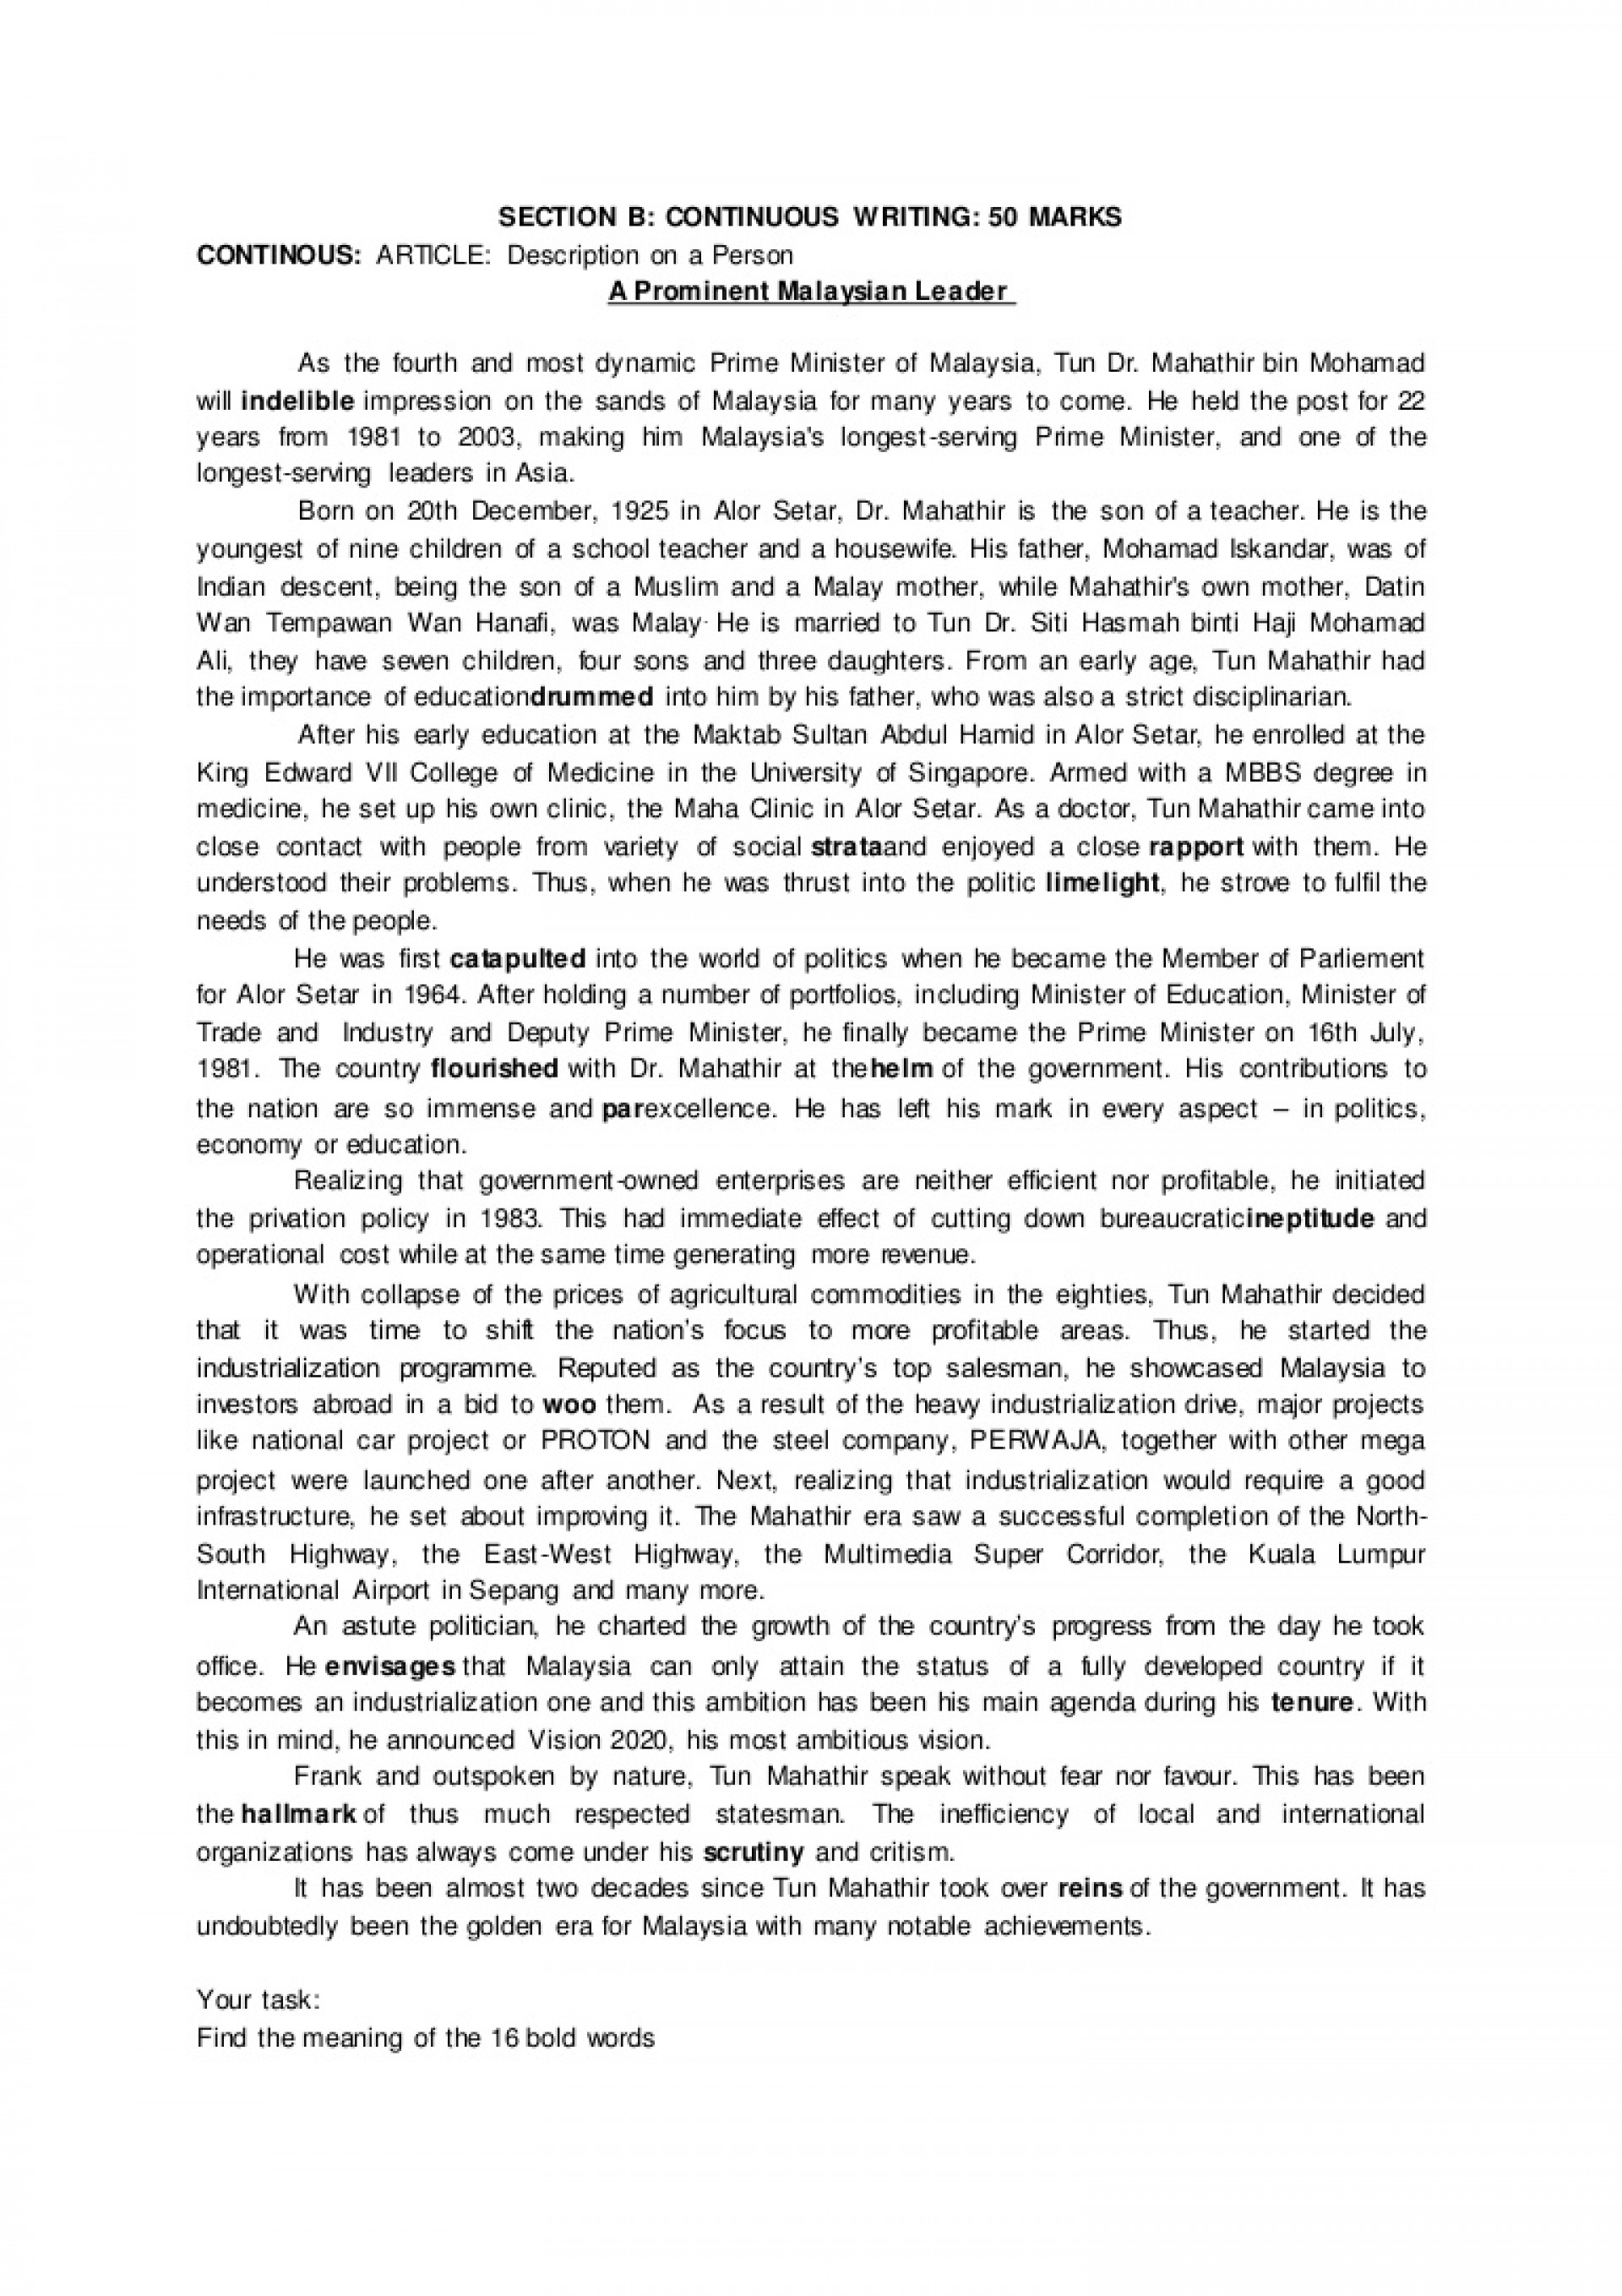 002 Essay Example Of My Hometown Write An About Your Pay For Geology Personal Writing Staggering Spm On Delhi Malaysia 1920